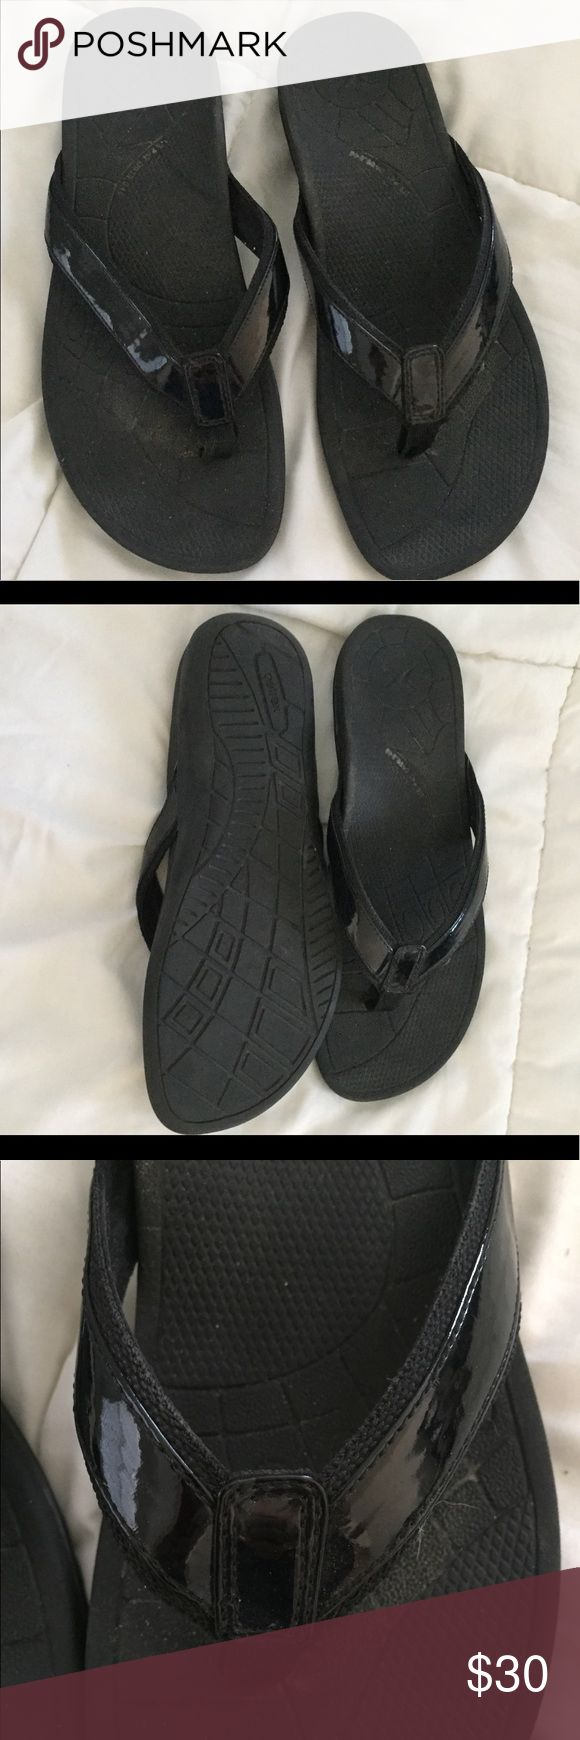 Vionic orthopedic flip flops Doctor recommended for foot and back pain, Leg circulation etc. only worn a few times Vionic Shoes Sandals